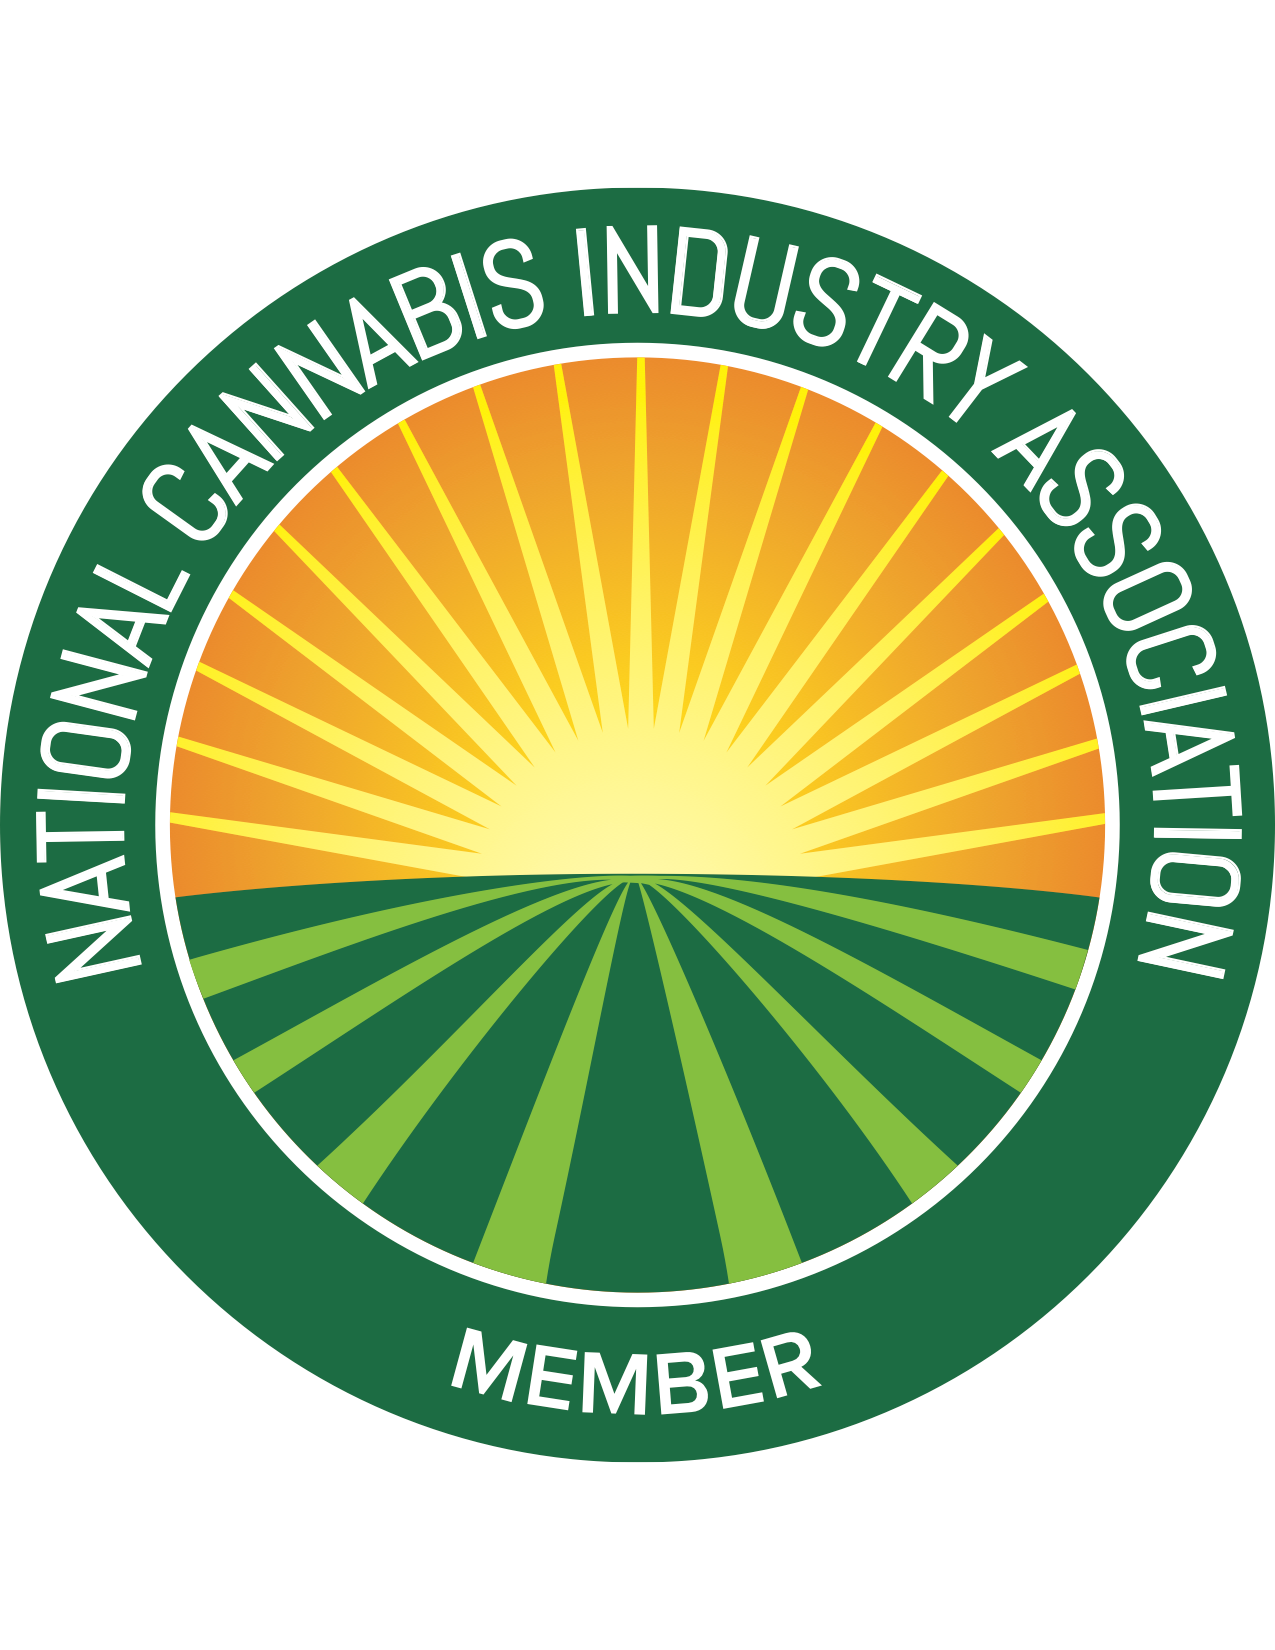 The National Cannabis Industry Association